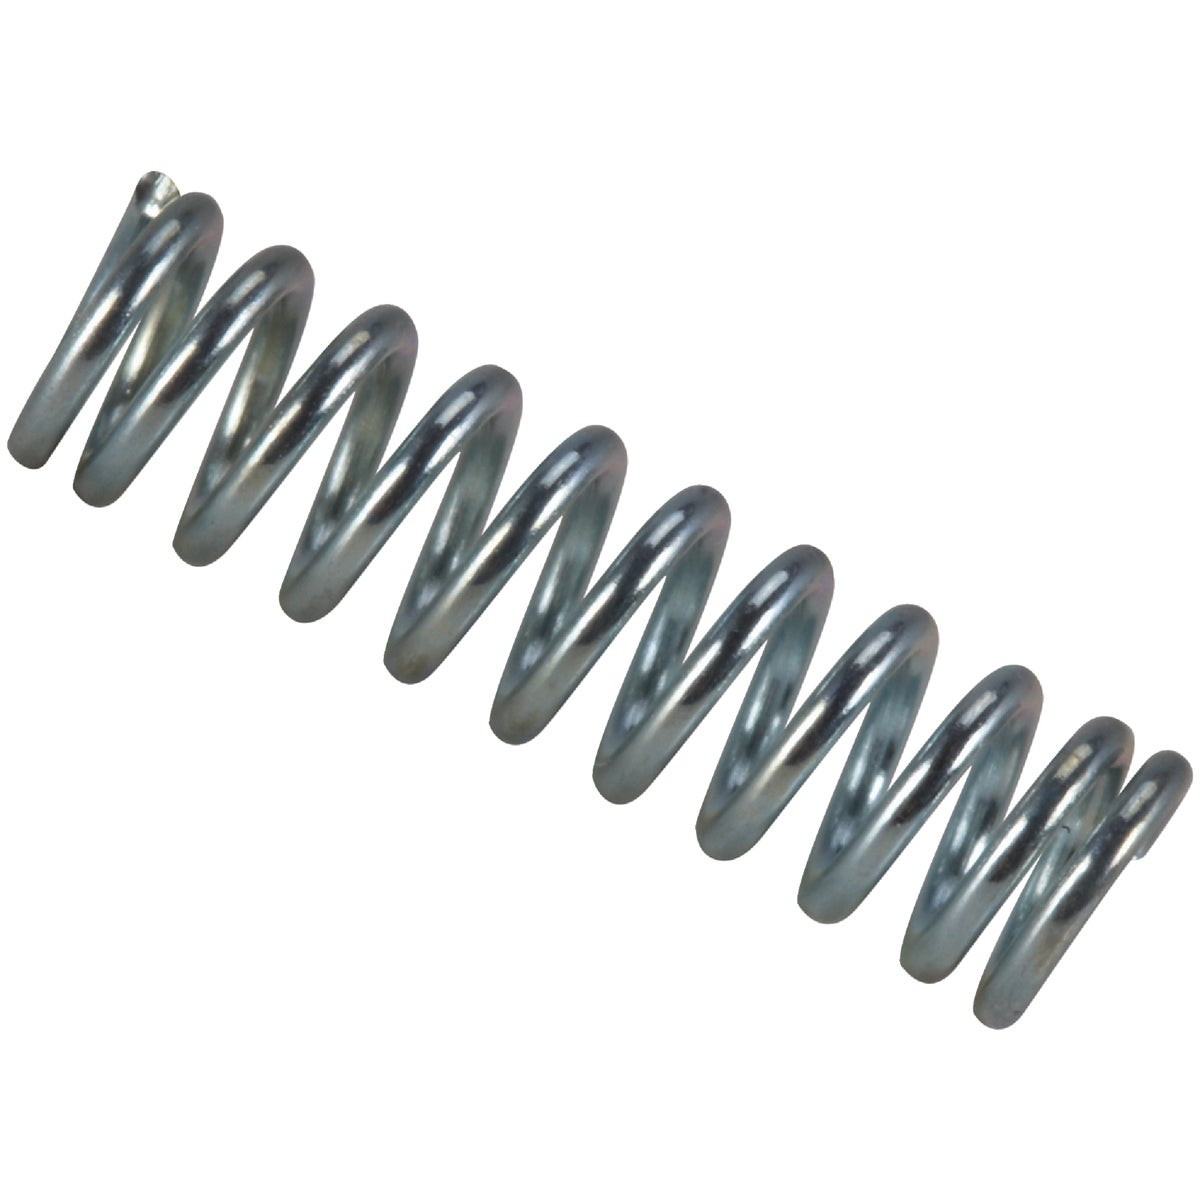 COMPRESSION SPRING - C-864 by Century Spring Corp